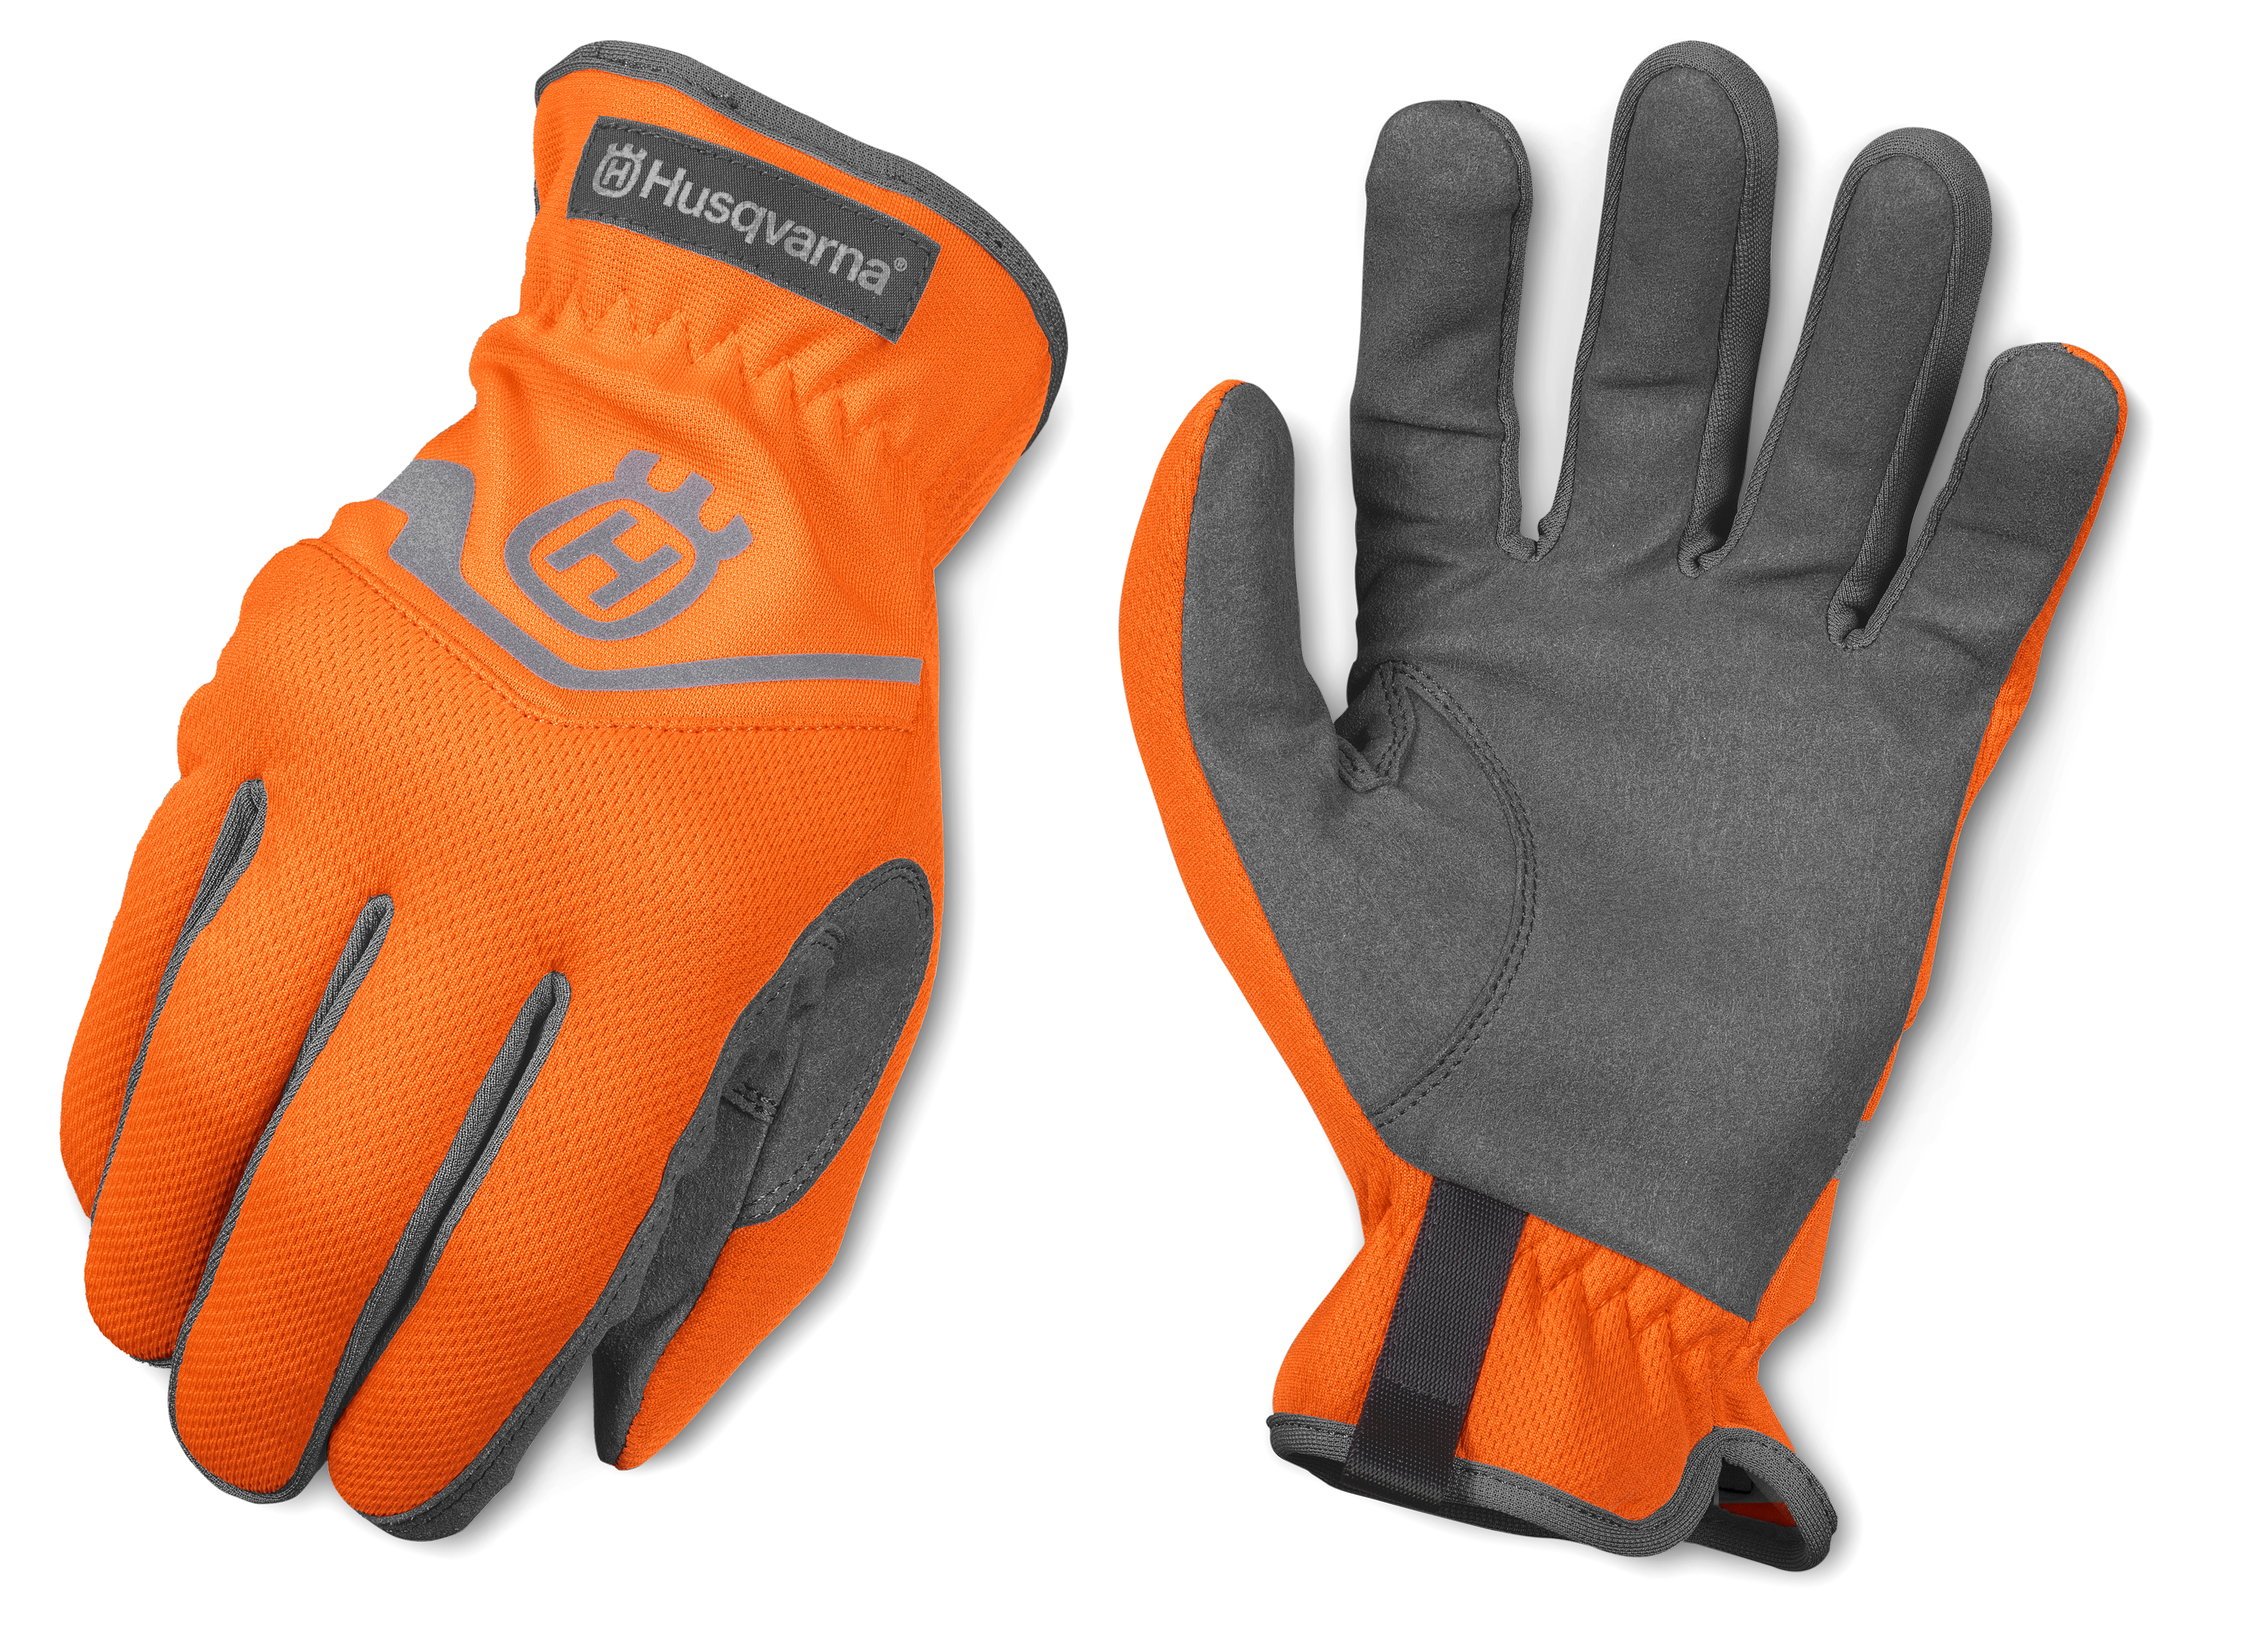 Image for Classic Work Gloves                                                                                                              from HusqvarnaB2C